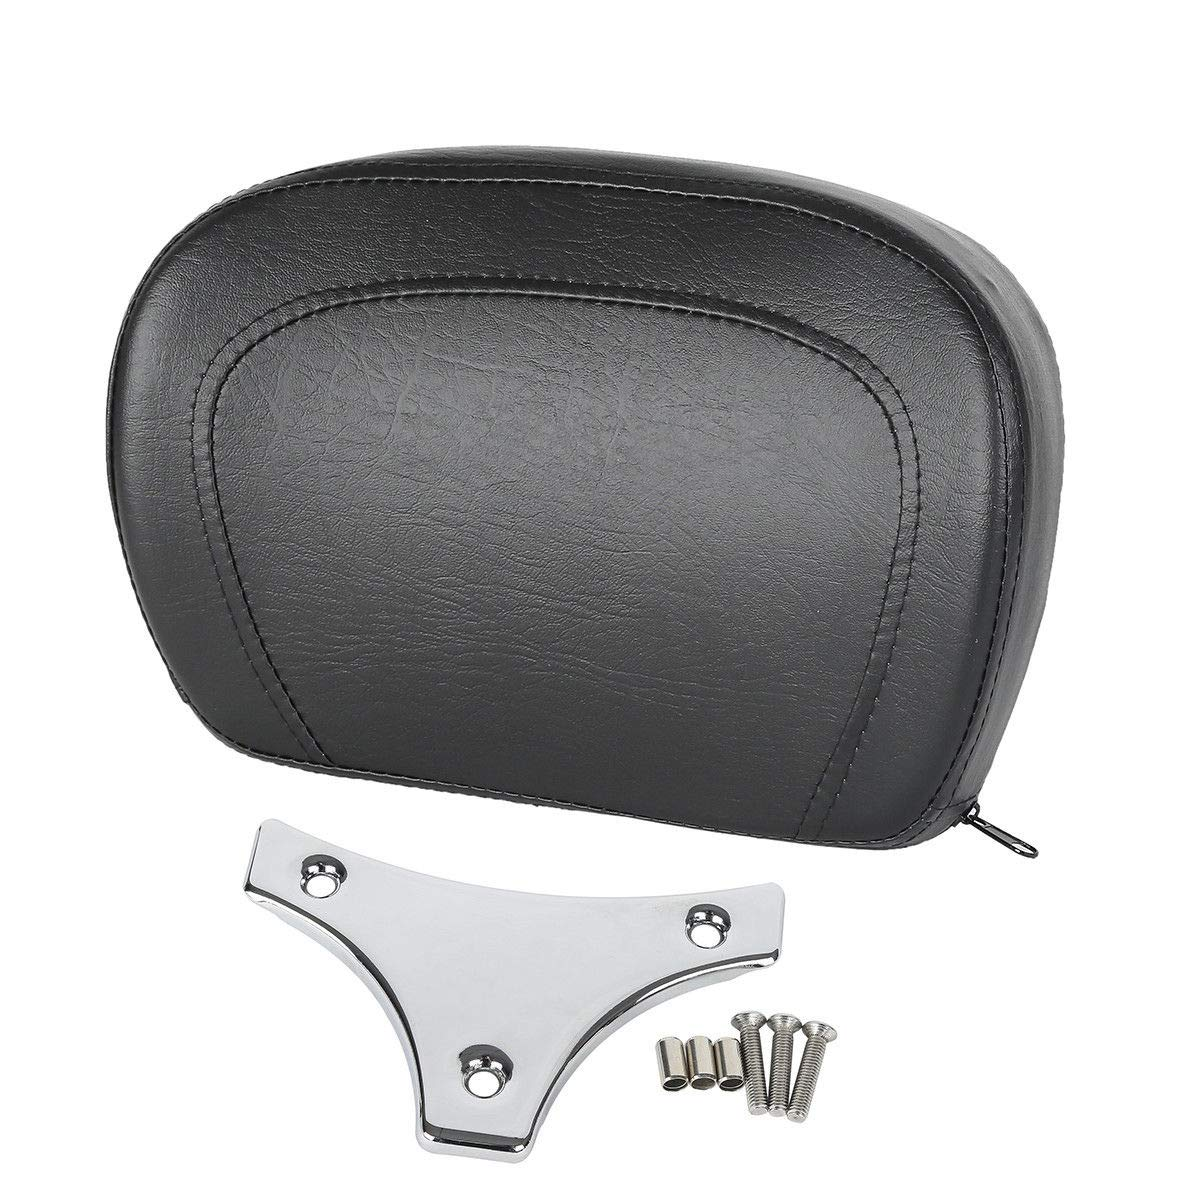 TCMT Detachable Leather Sissy Bar Backrest Pad Bracket For Harley Touring Road King Electra 1997 98 99 00 010 20 3 04 05 06 07 08 09 10 11 12 13 14 2015 2016 2017 2018